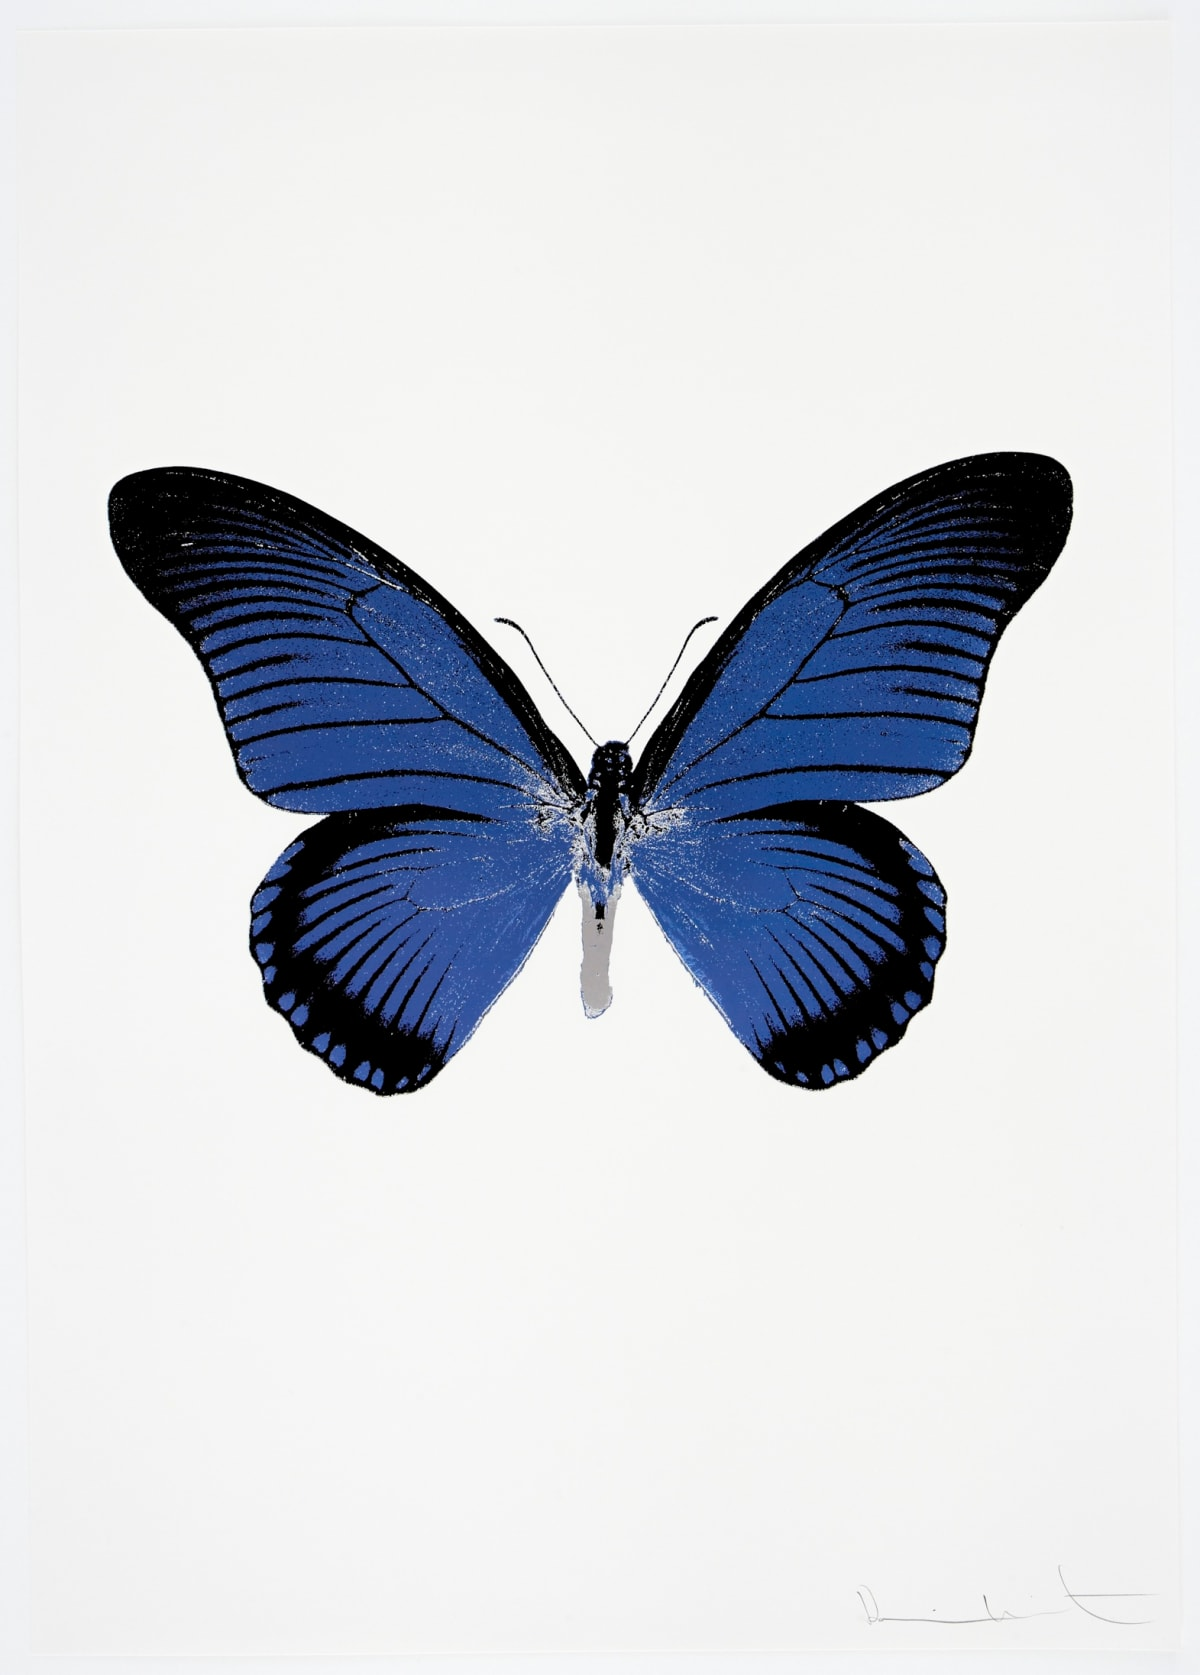 Damien Hirst The Souls IV - Frost Blue/Raven Black/Silver Gloss, 2010 3 colour foil block on 300gsm Arches 88 archival paper. Signed and numbered. Published by Paul Stolper and Other Criteria 72 x 51cm OC8030 / 1418-53 Edition of 15